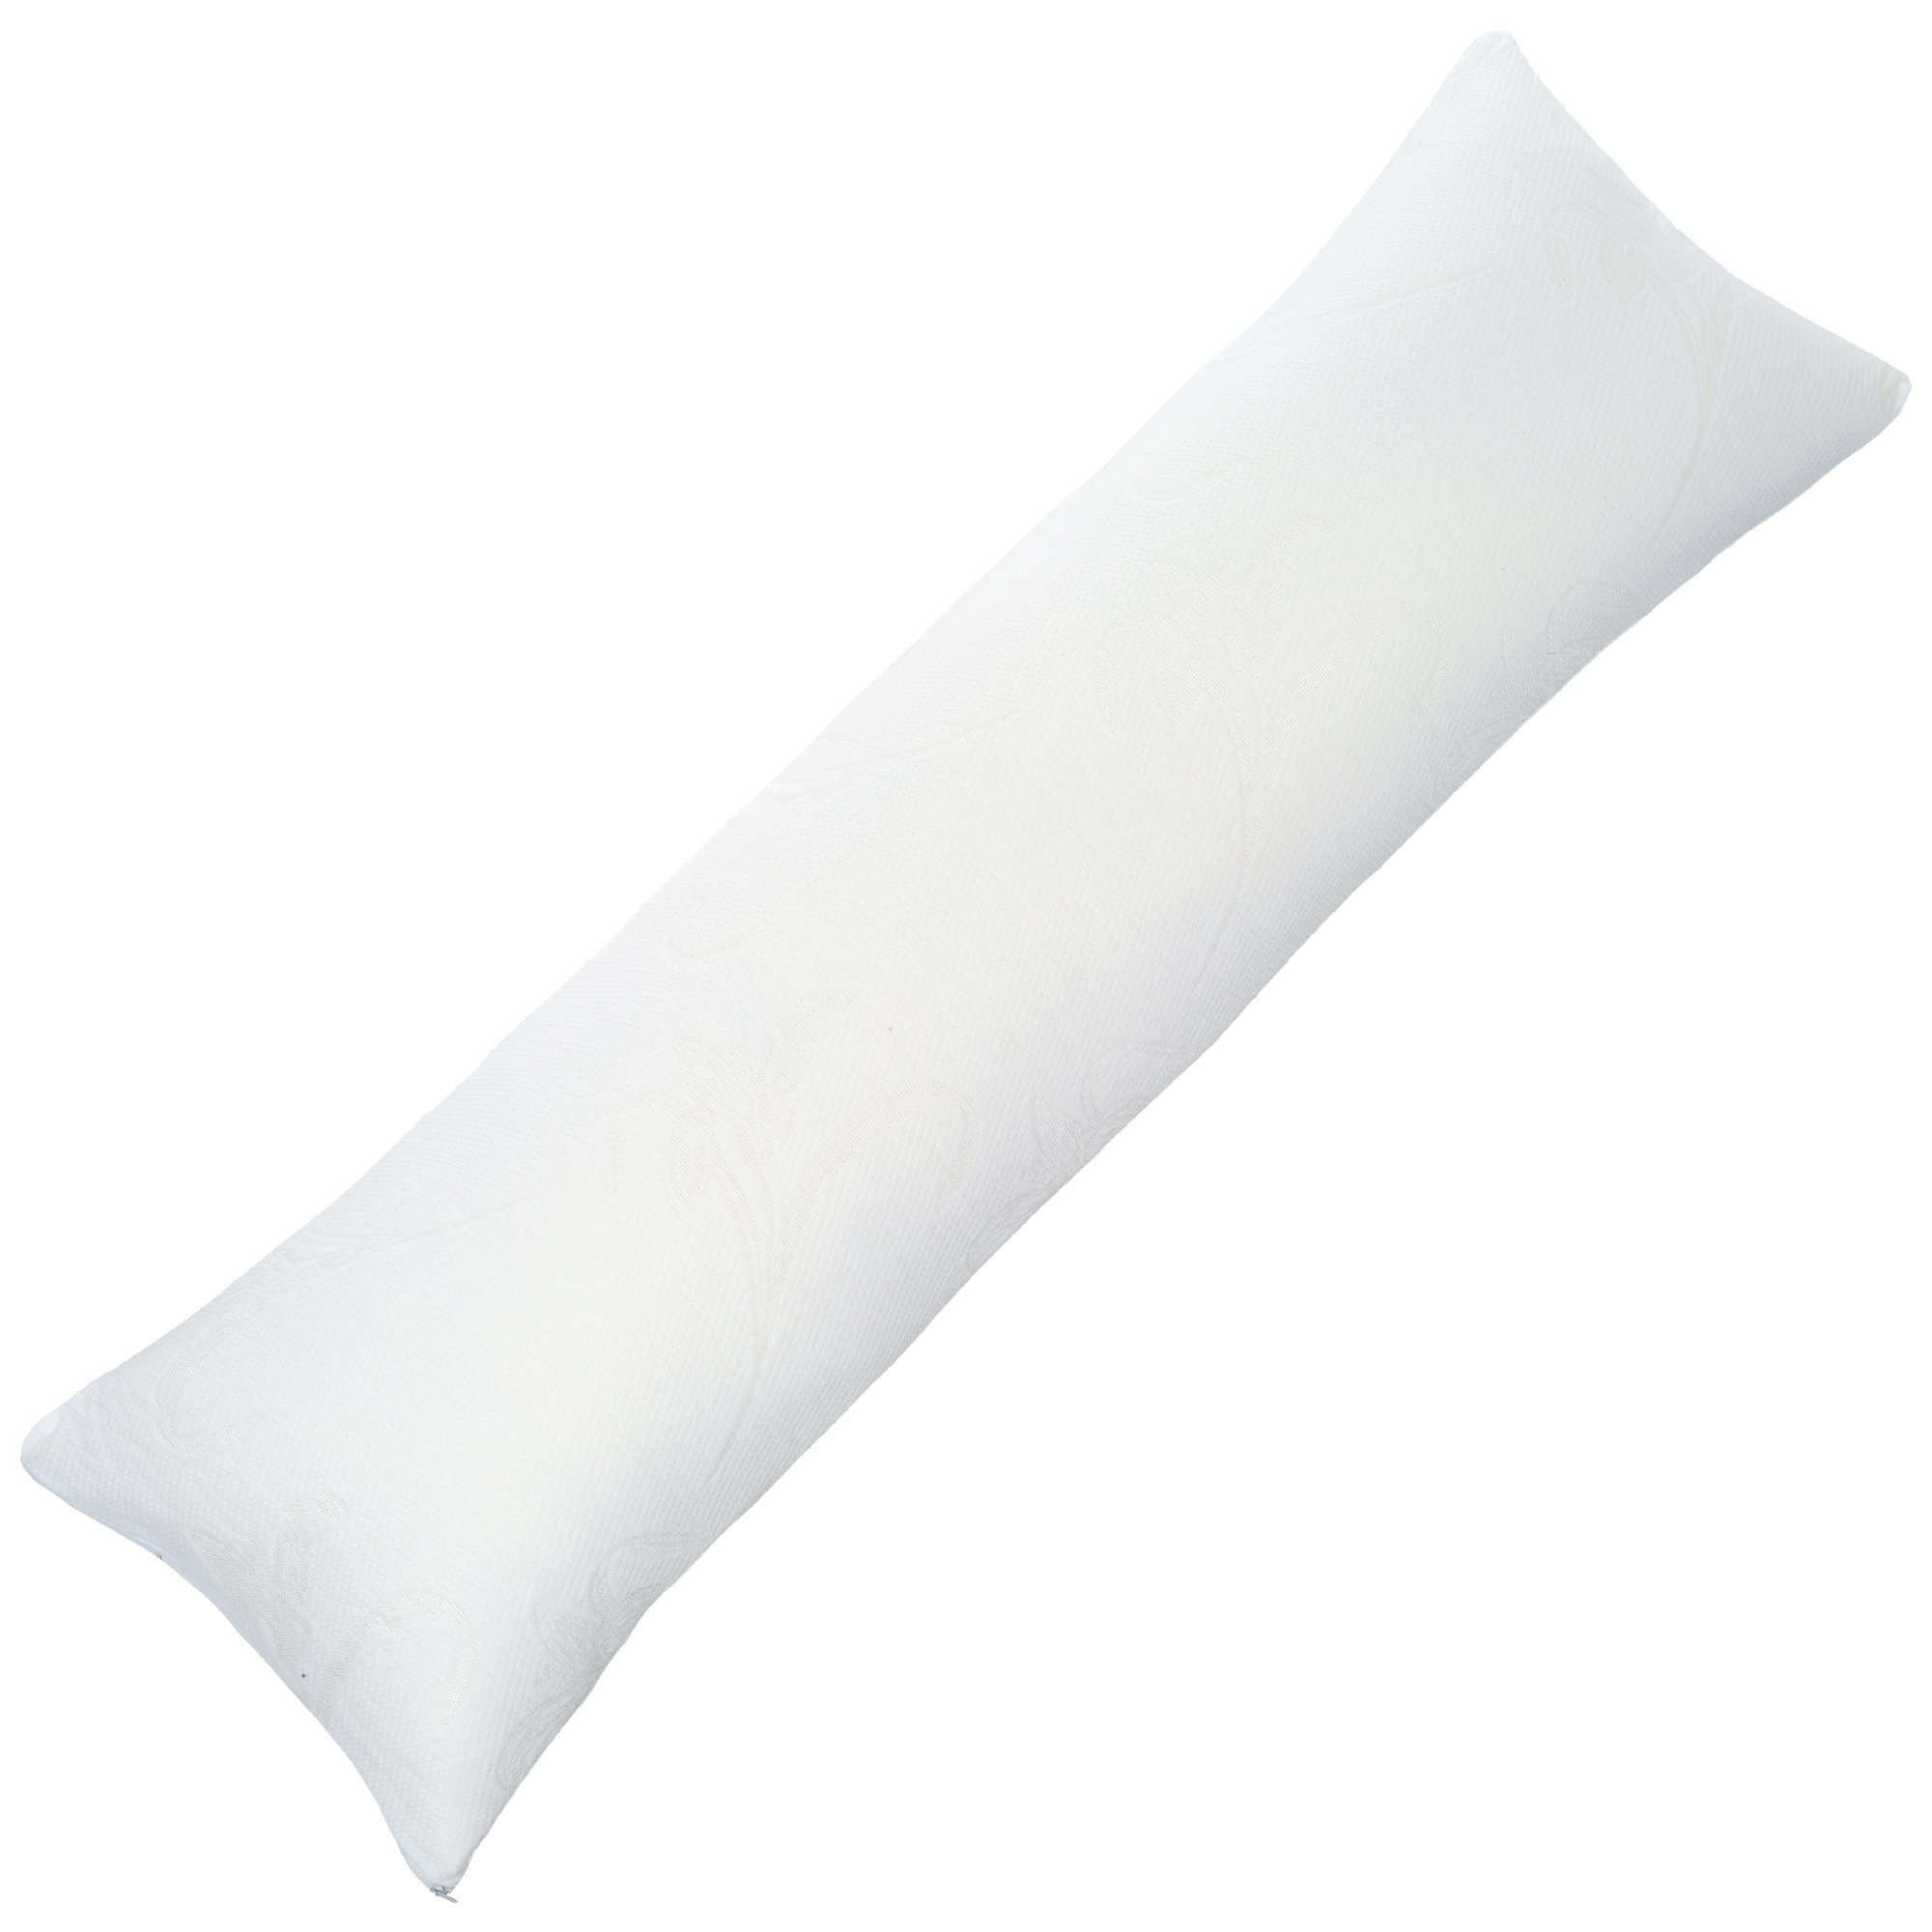 Lavish Home Memory Foam Body Pillow, Bed Pillows for Comfort and Support (Removable Pillow Cover, Hypoallergenic Pillow Protector, 50 inches x 14 inches)